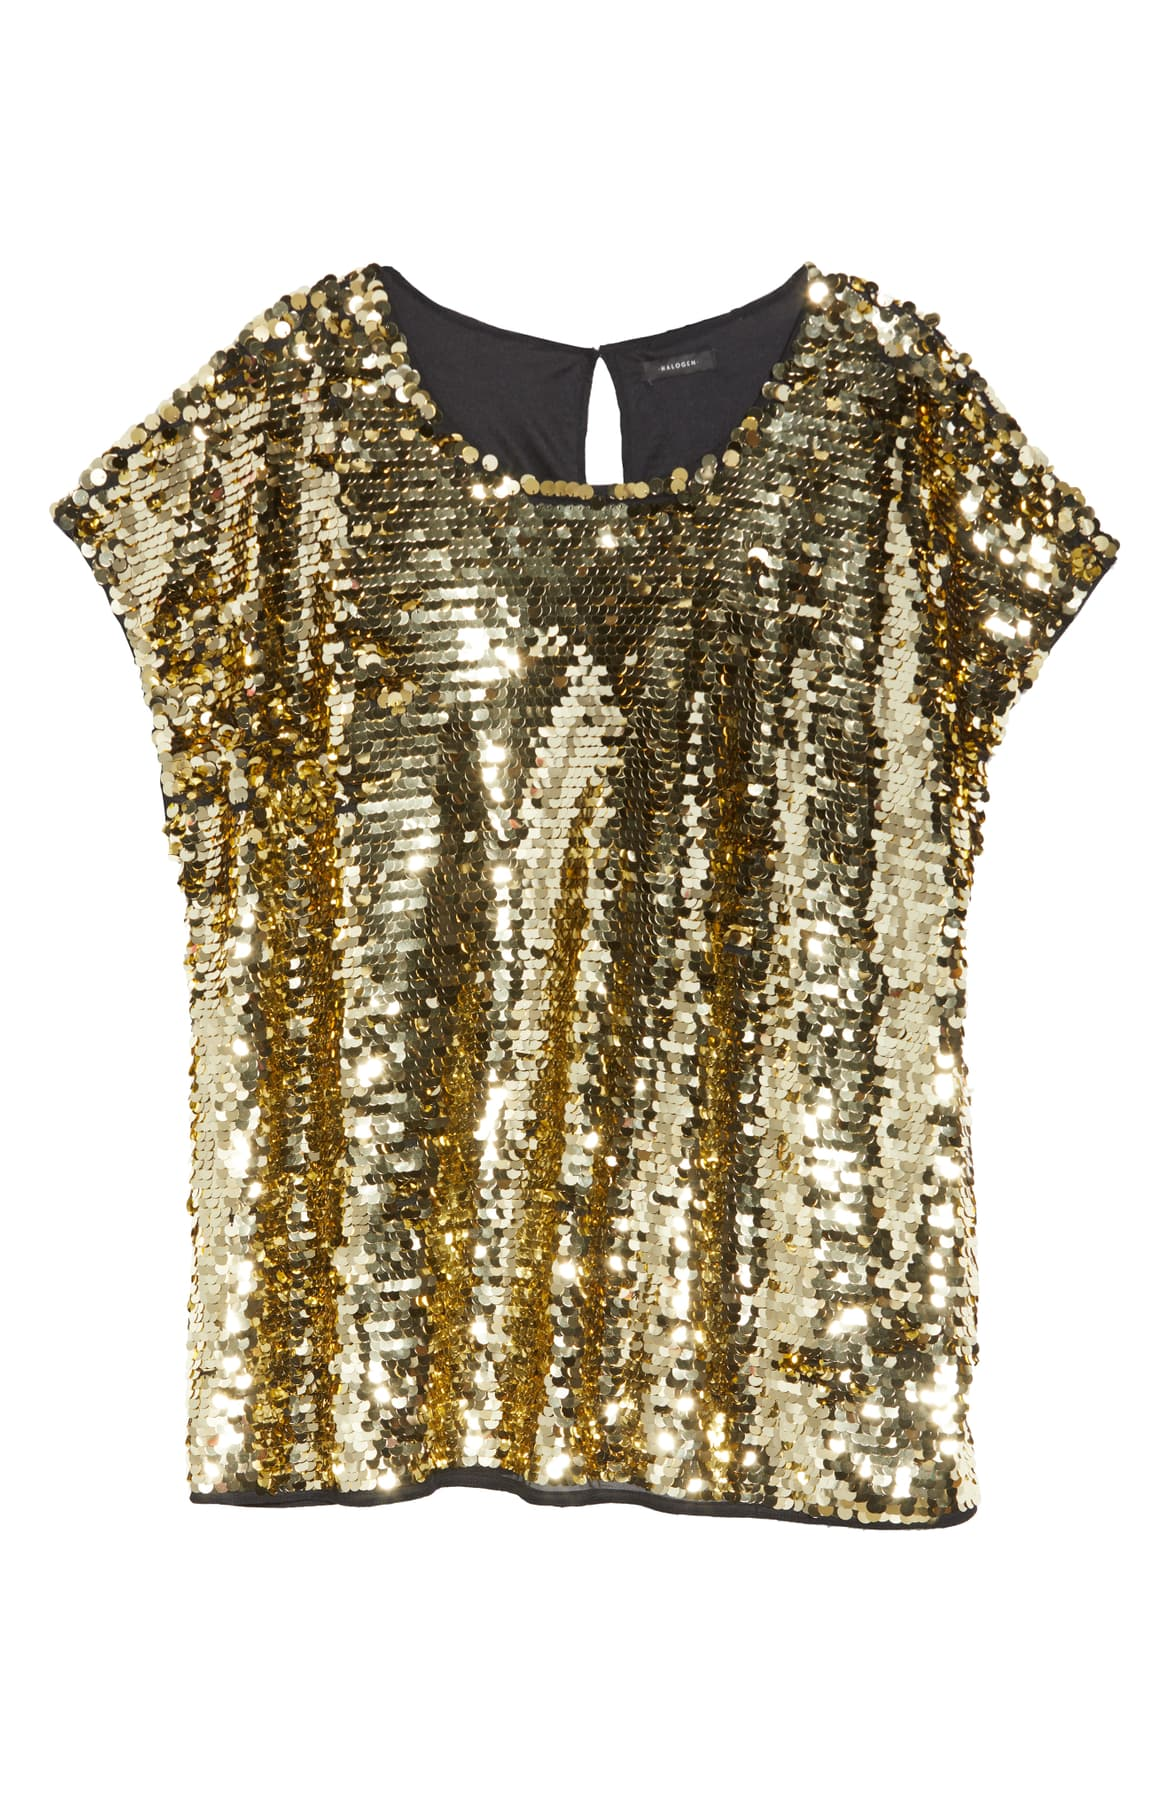 "<a  href=""https://shop.nordstrom.com/s/halogen-sequin-cap-sleeve-top/5527231/full?origin=keywordsearch-personalizedsort&breadcrumb=Home%2FAll%20Results&color=gold"" target=""_blank"" title=""https://shop.nordstrom.com/s/halogen-sequin-cap-sleeve-top/5527231/full?origin=keywordsearch-personalizedsort&breadcrumb=Home%2FAll%20Results&color=gold"">Halogen Sequin Cap Sleeve Top - $47.40.</a>{&nbsp;}From cozy to gold hued to tailored, Nordstrom has the hottest trends for getting glam this holiday season! (Credit: Nordstrom)"